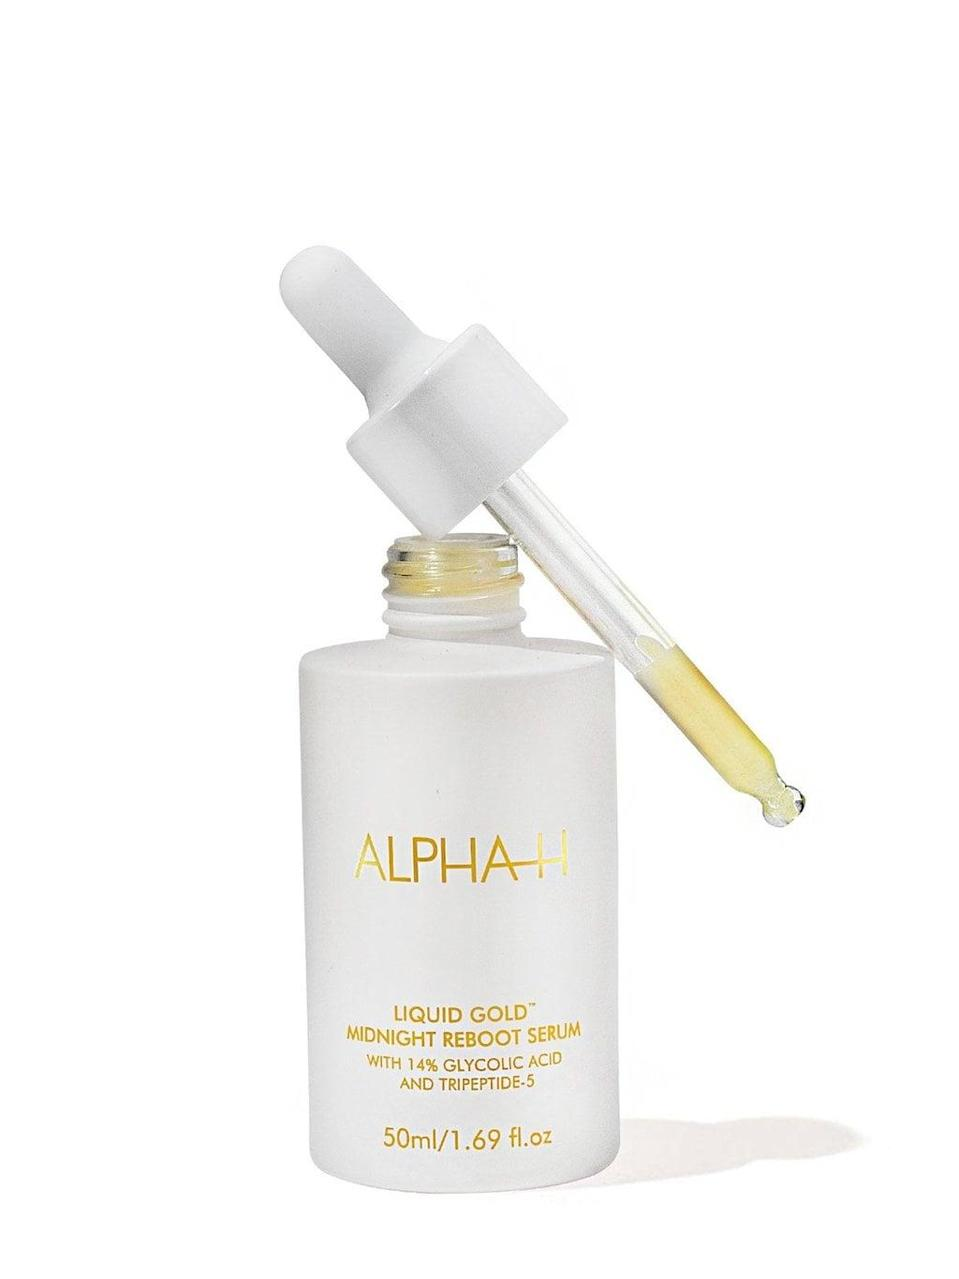 <p>The <span>Alpha-H Liquid Gold Midnight Reboot Serum</span> ($99) combines two potent, often not mixed ingredients - glycolic acid and a retinoid - to make a powerful exfoliating serum. Those with normal, combination, and dry skin can use it at night - just don't mix it with other chemical or exfoliating products.</p>